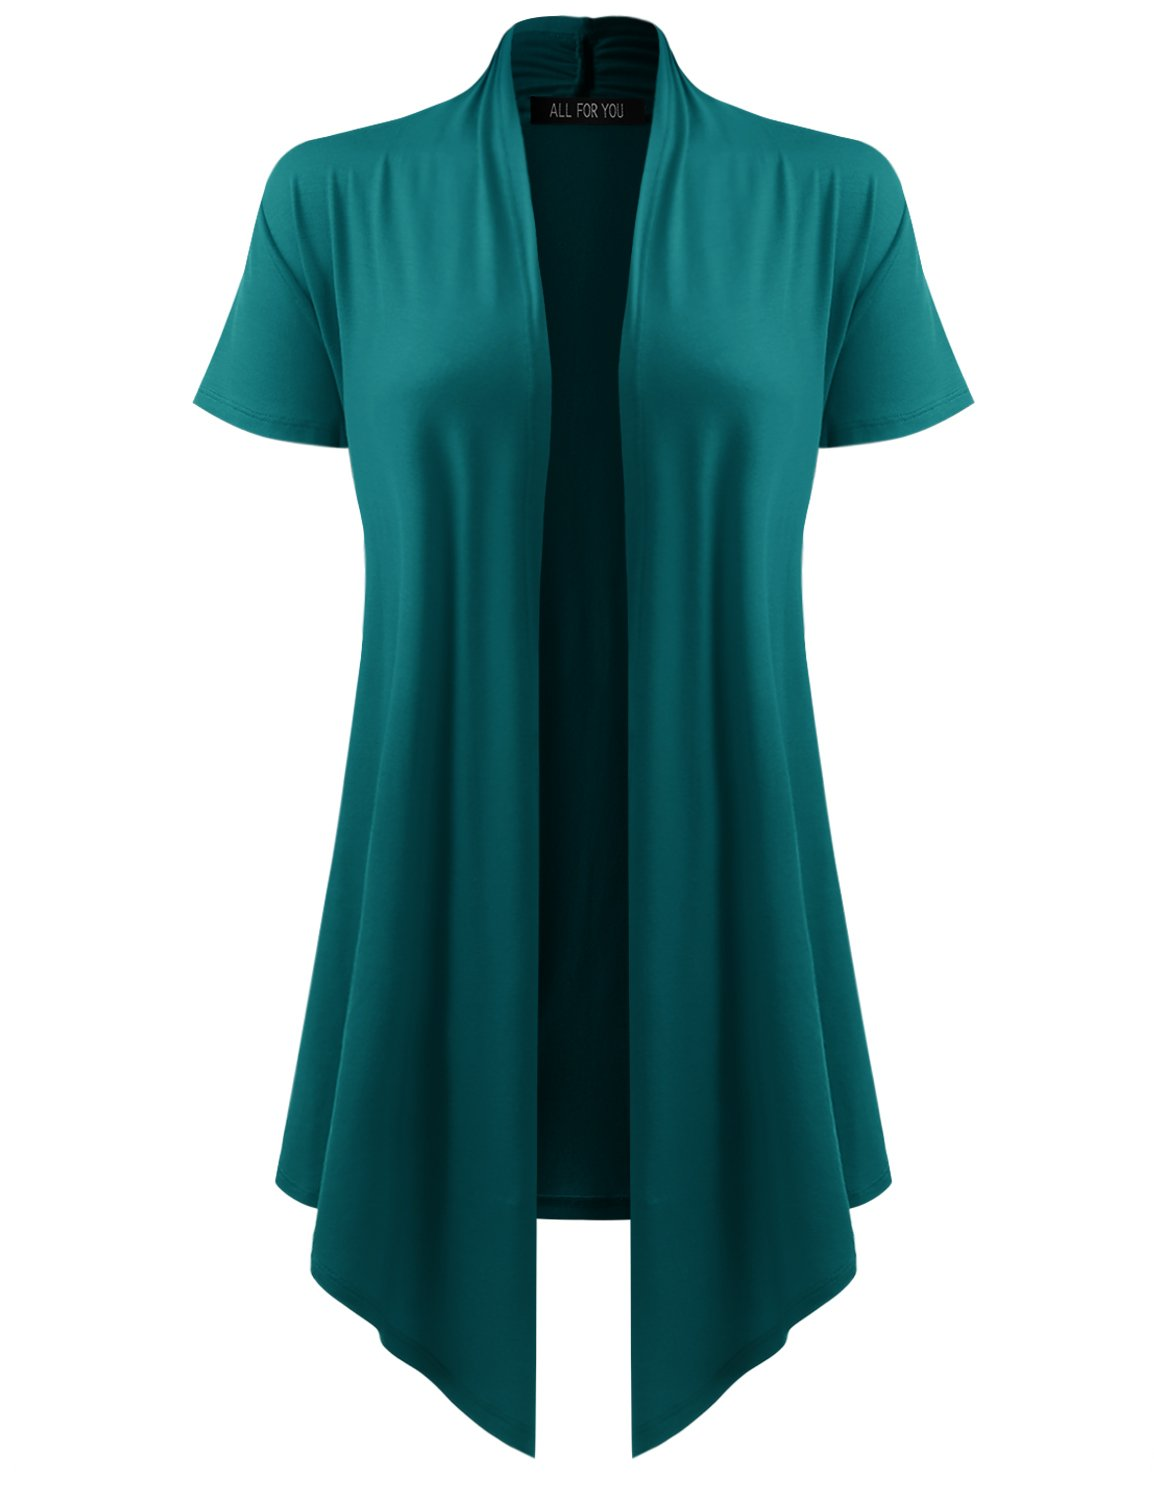 ALL FOR YOU Women's Soft Drape Cardigan Short Sleeve Teal Large